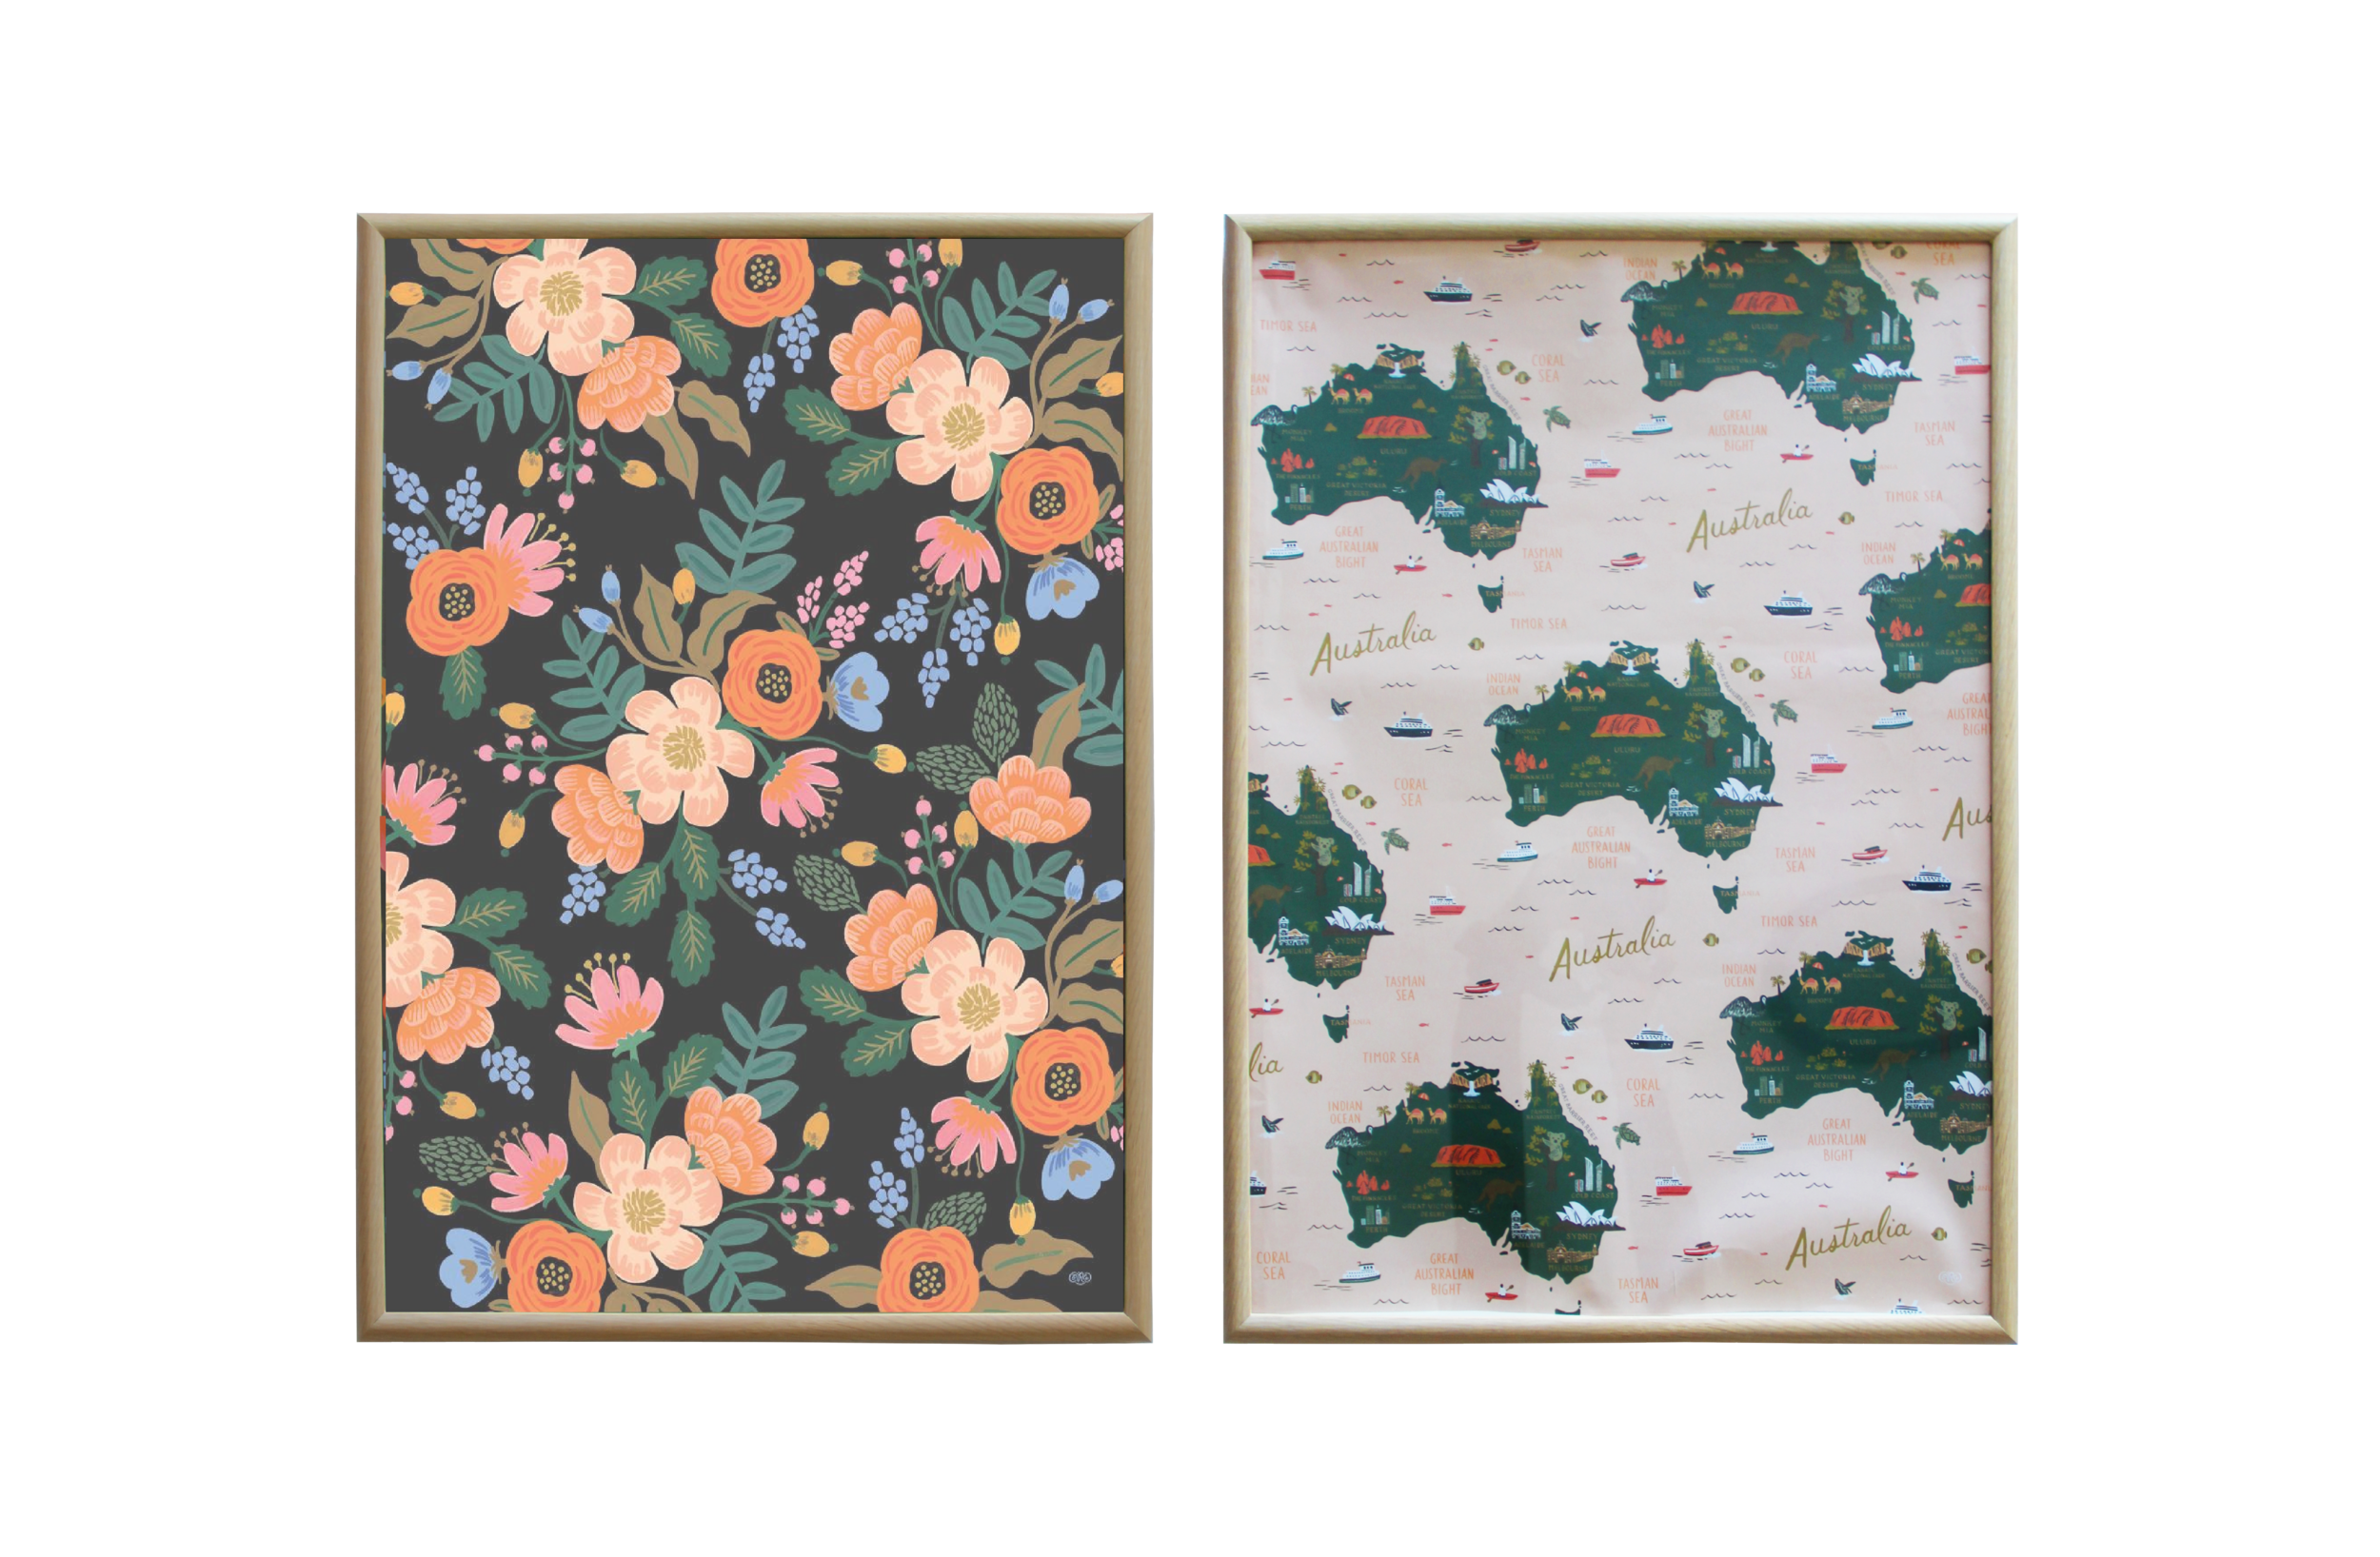 FRAMED GIFT WRAP BY RIFLE PAPER & CO